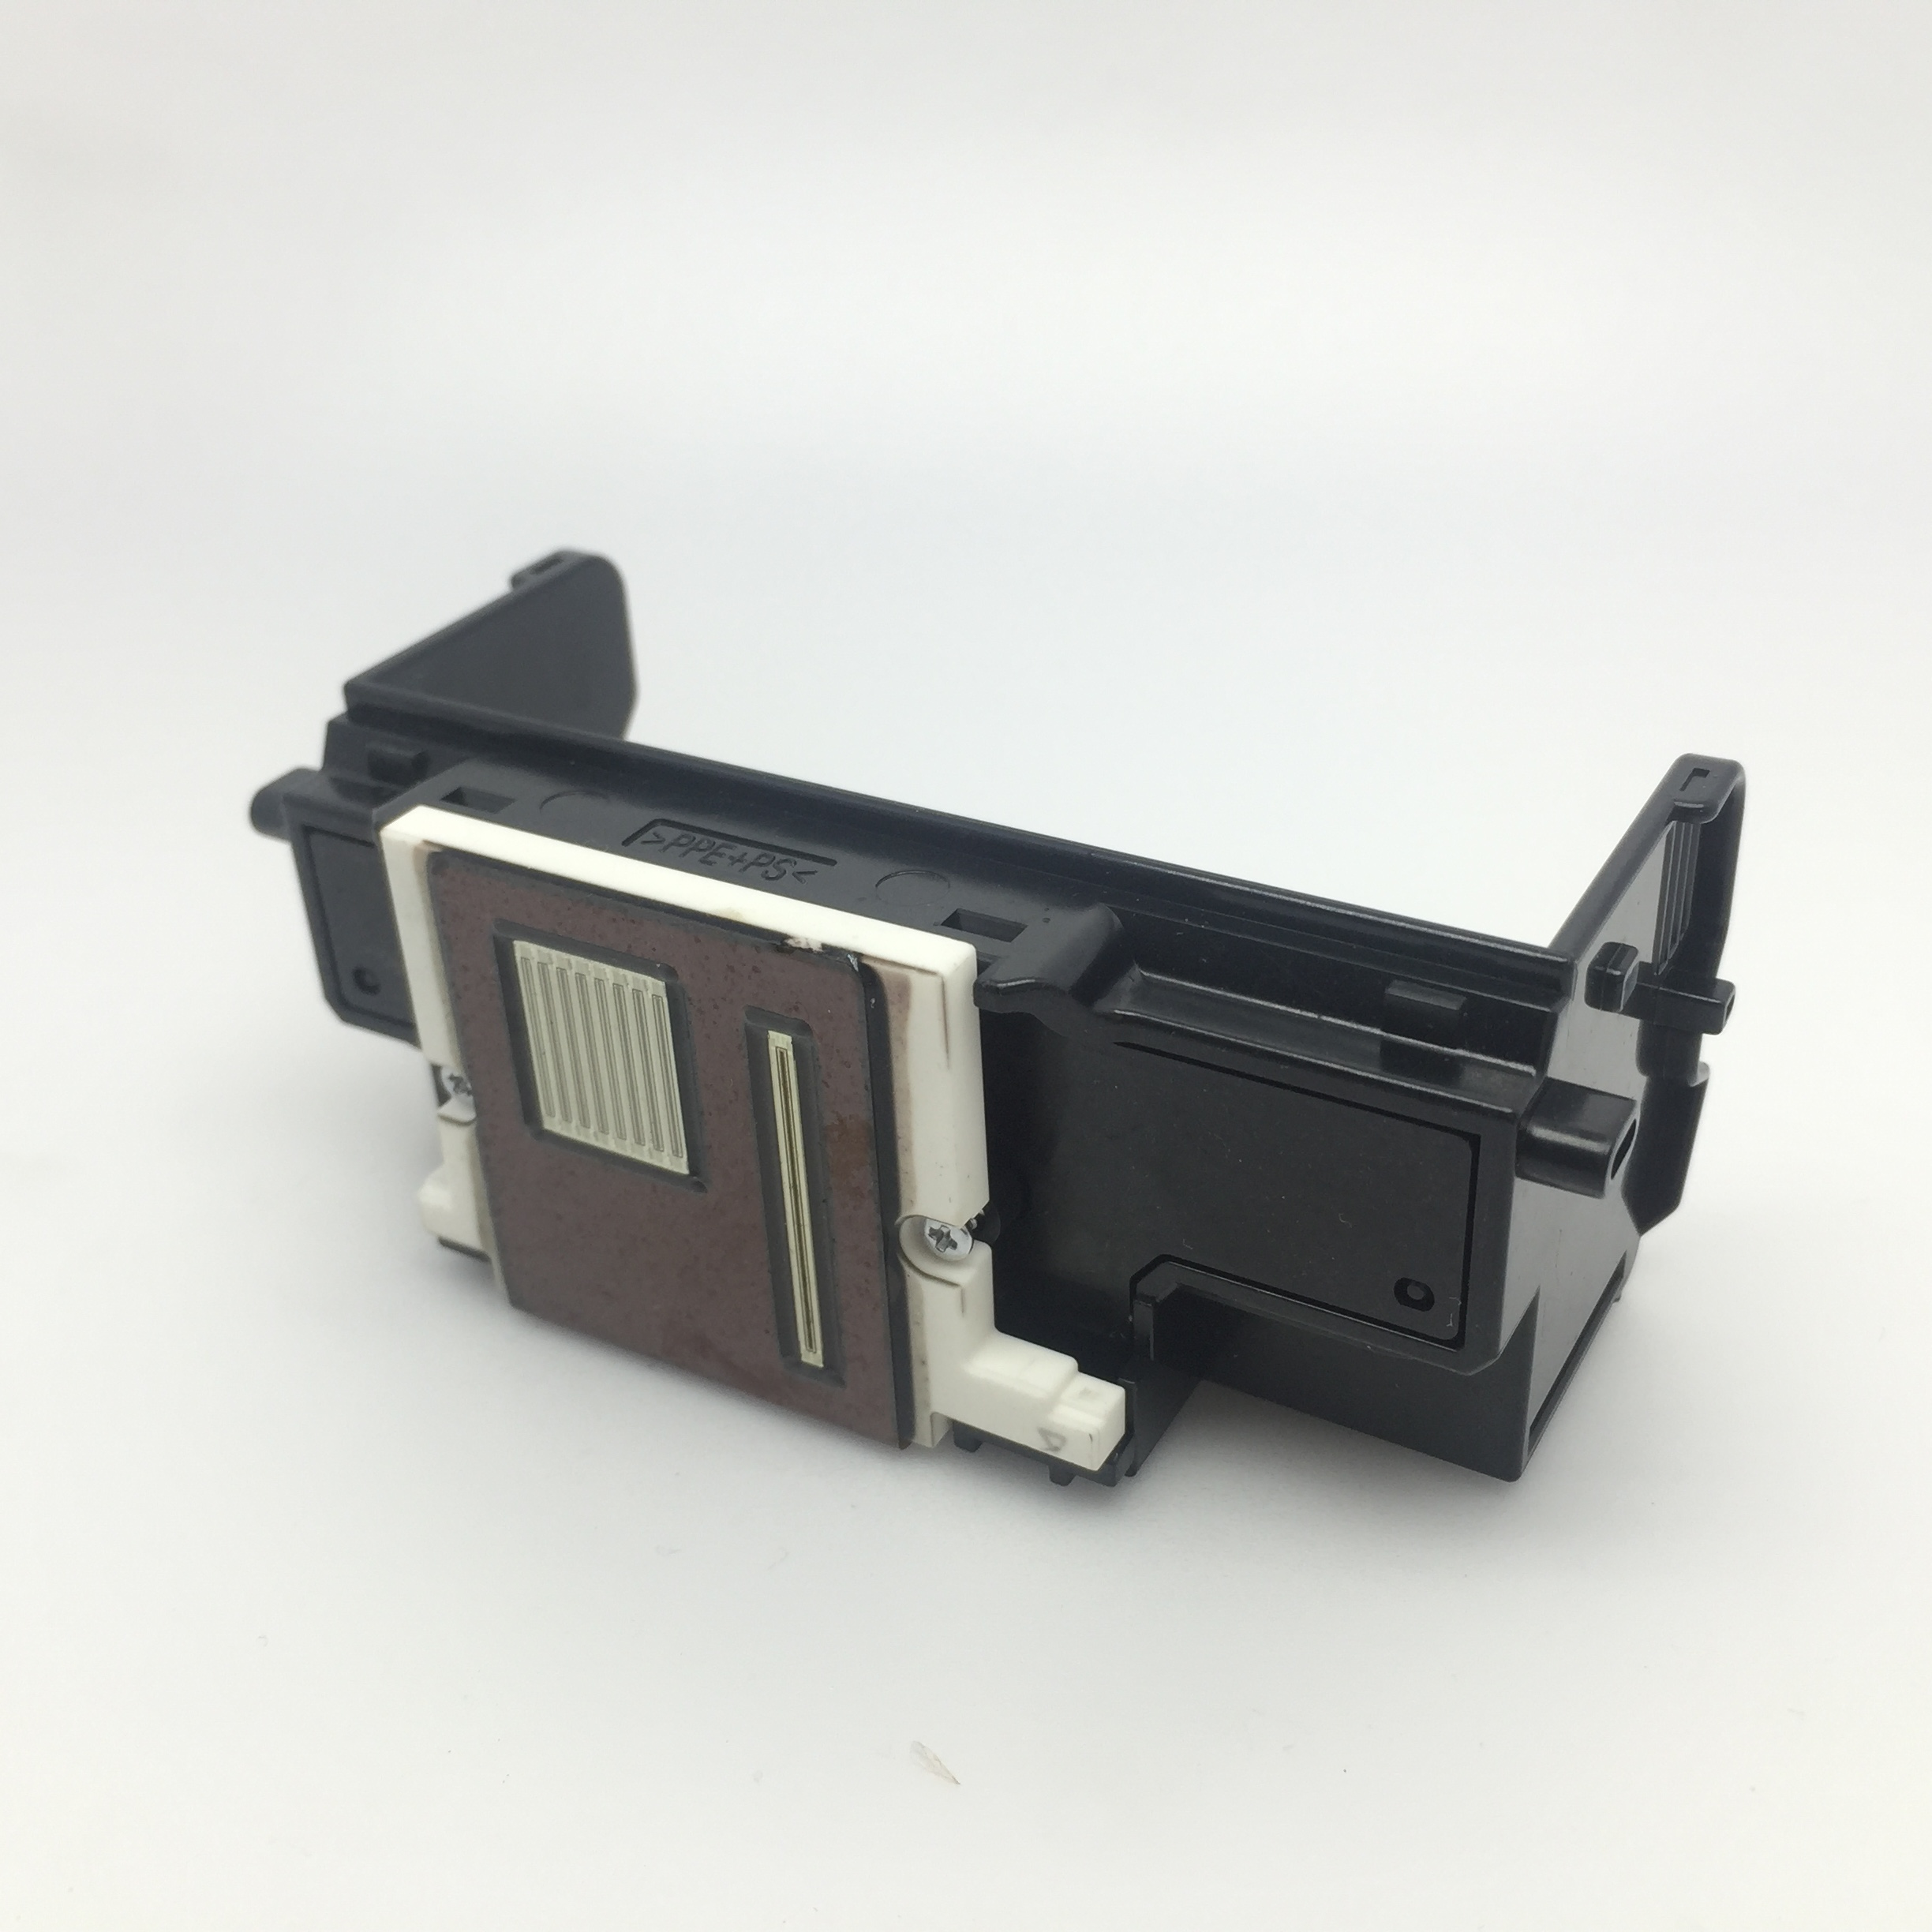 print head QY6-0078 Original Refurbished Printhead for Canon MG6280 MG8180 MG8280 MP990 MP996 MG6120 MG6220 MG8120 Printer original refurbished print head qy6 0039 printhead compatible for canon s900 s9000 i9100 bjf9000 f900 f930 printer head